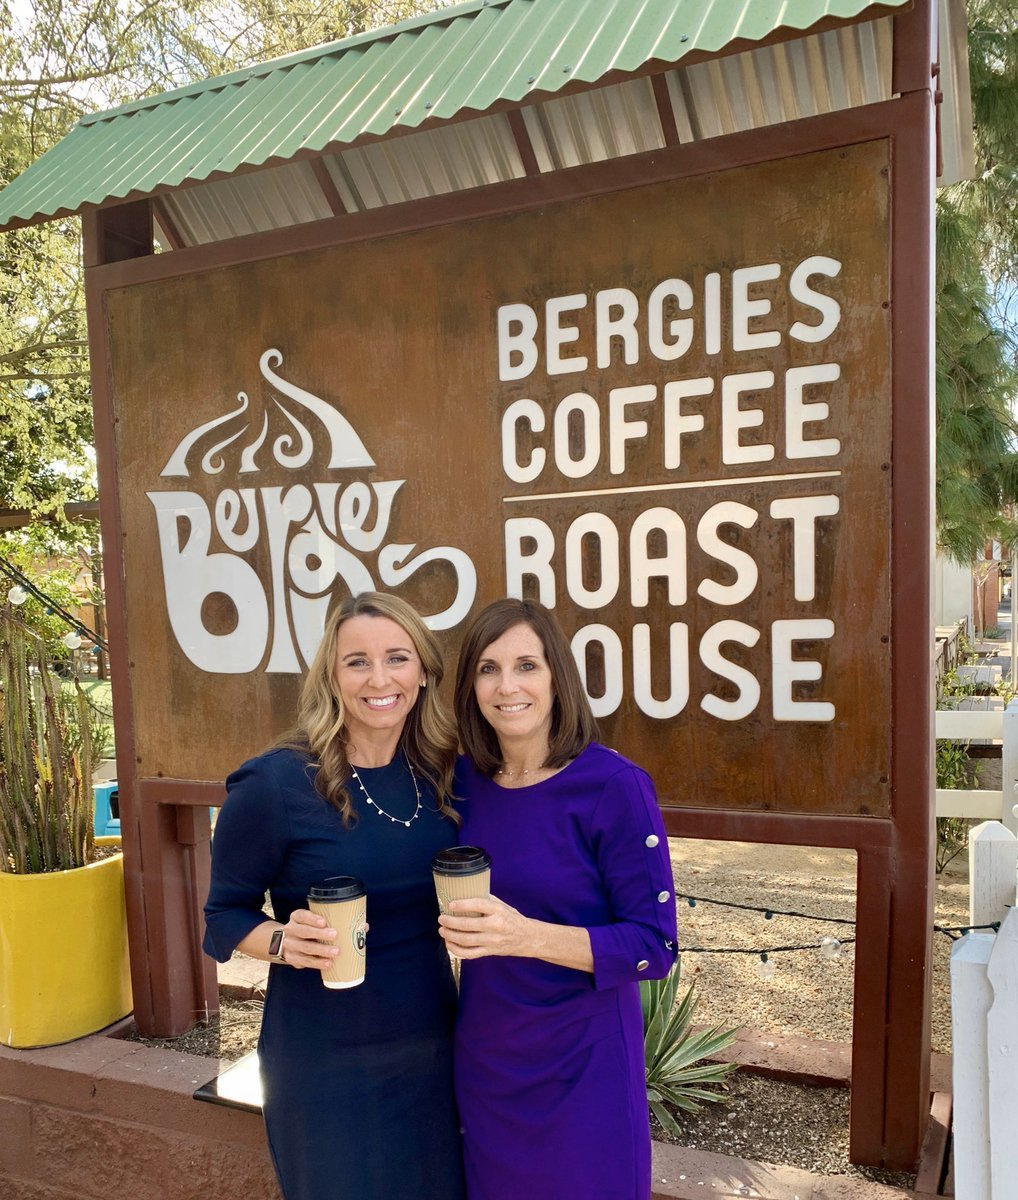 Catching up with @GilbertAZMayor Jenn Daniels at @BergiesCoffee.